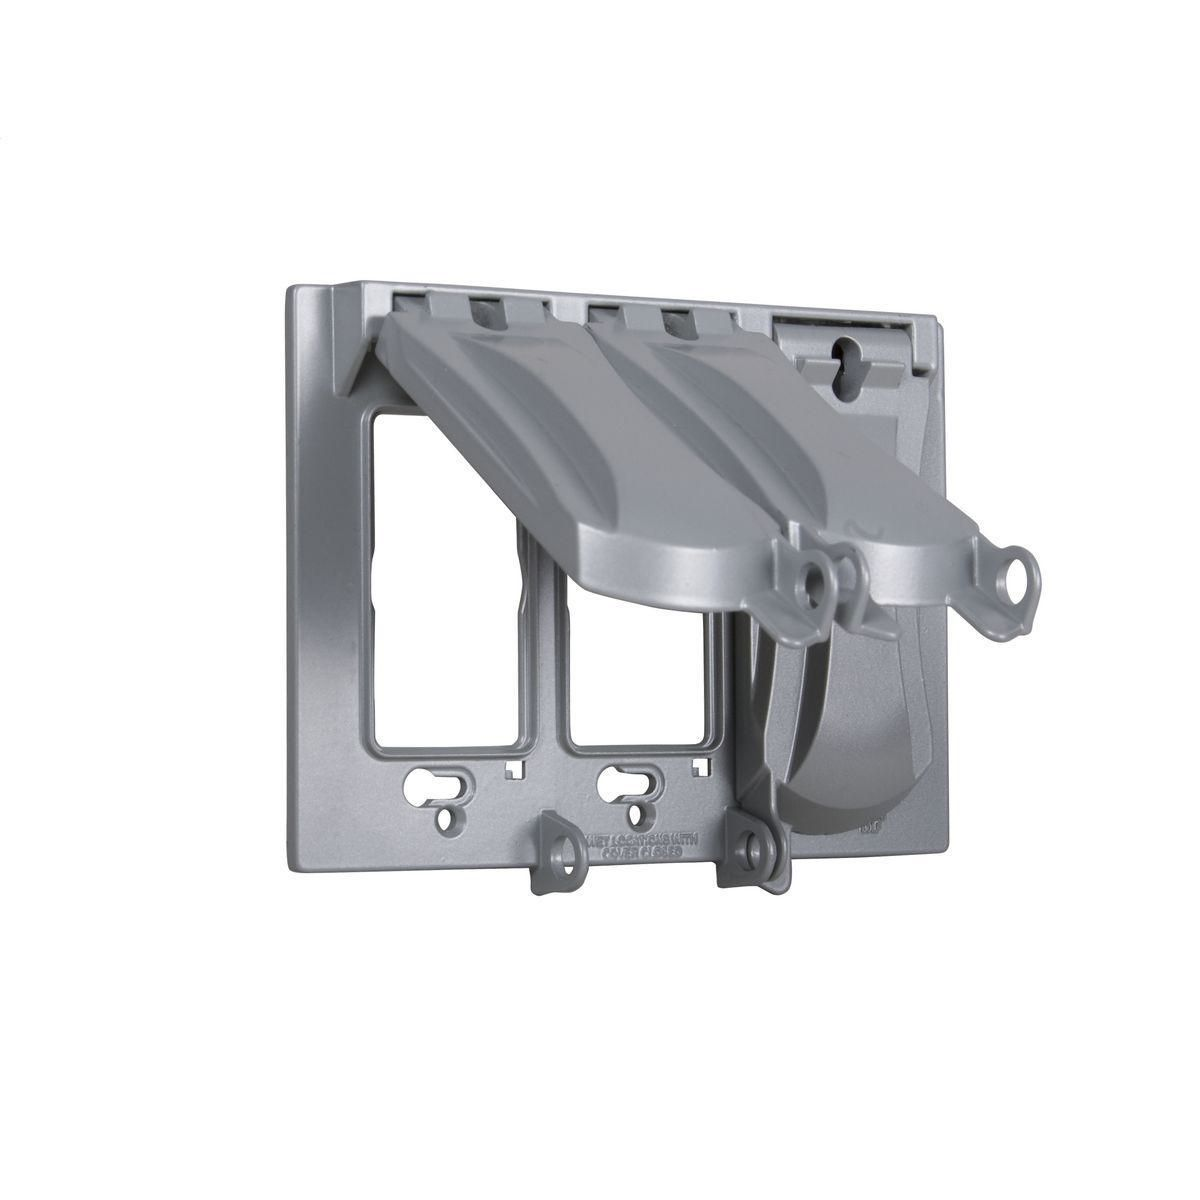 TMAC MX3050S 3G SWITCH COVER WP